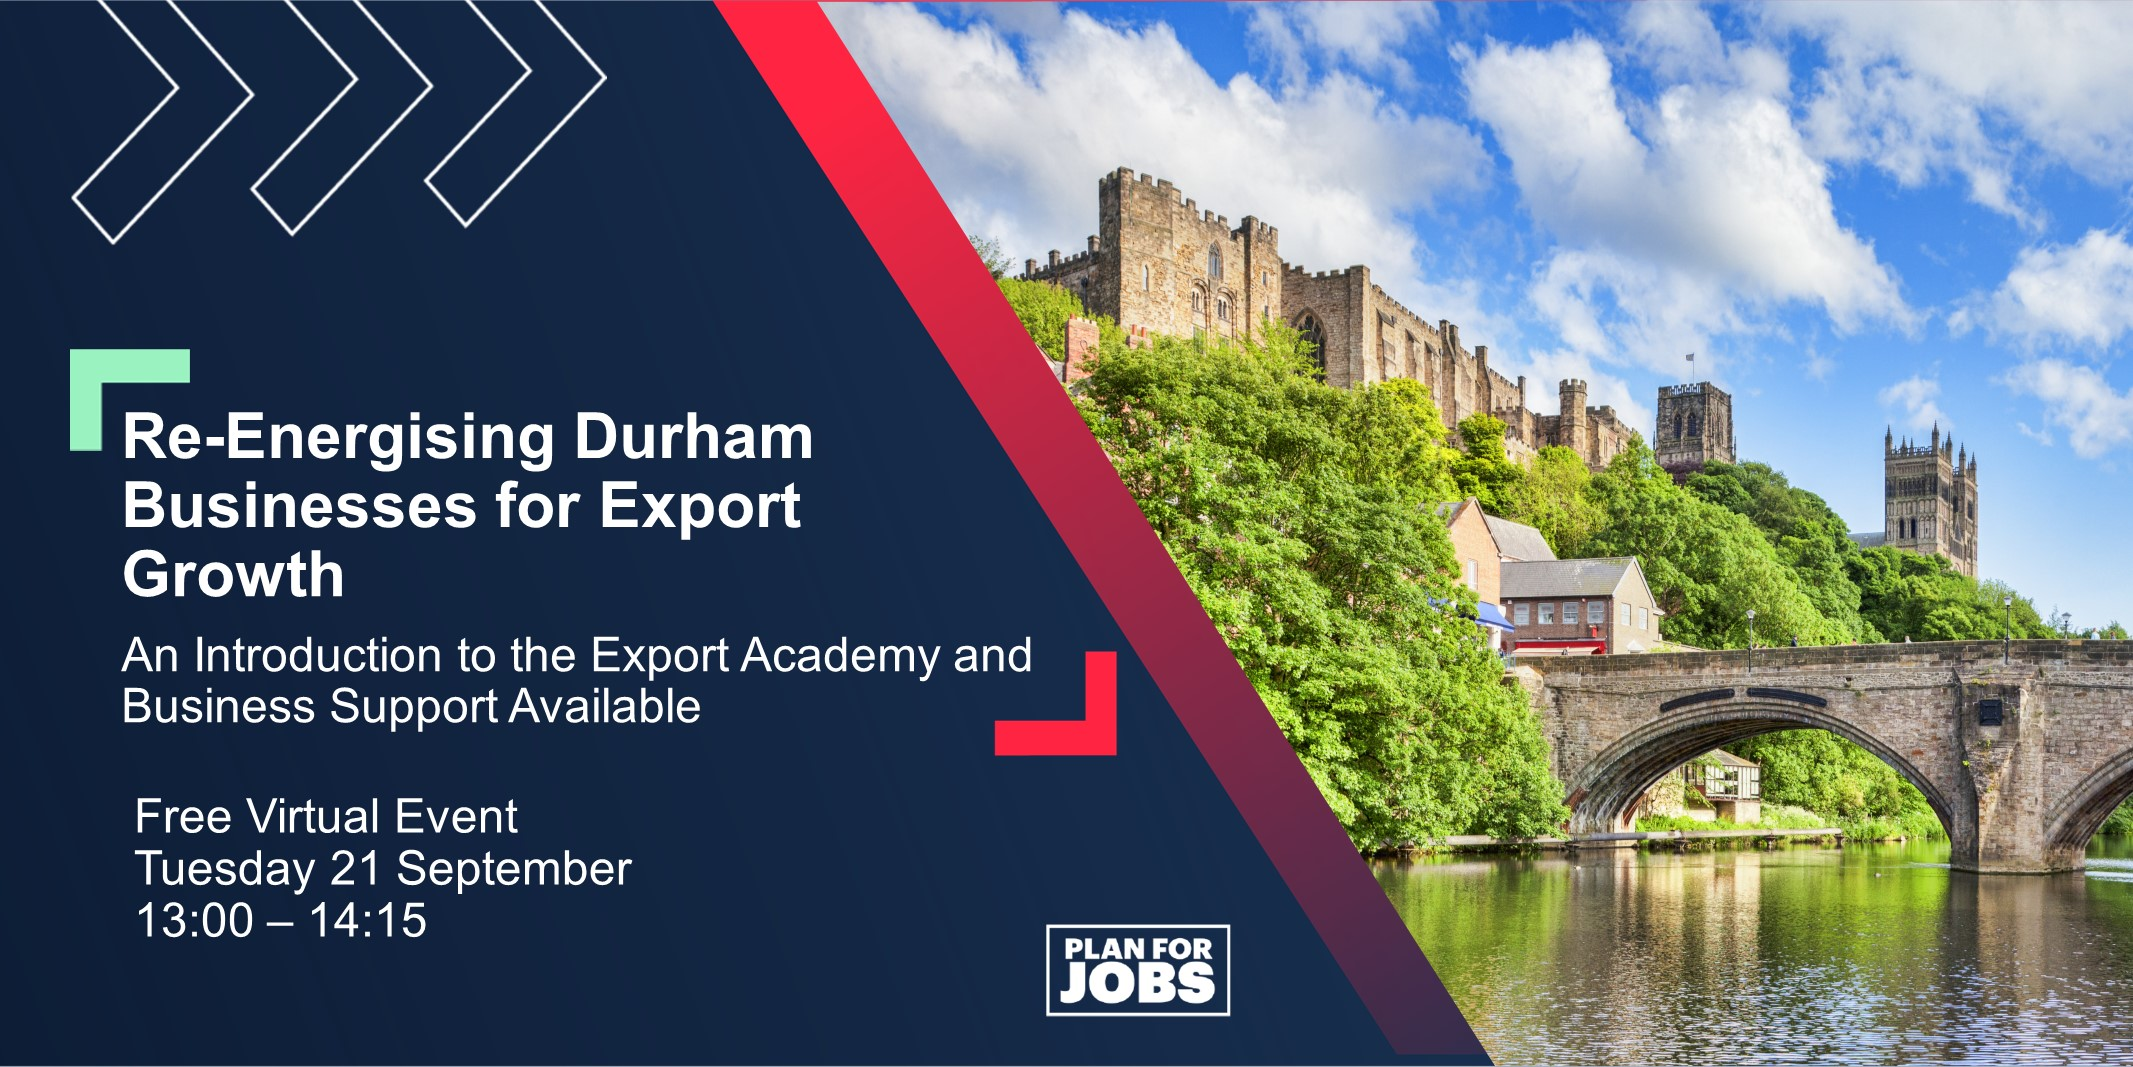 Re-Energising Durham Businesses for Export Growth event takes place on Tuesday 21st September.